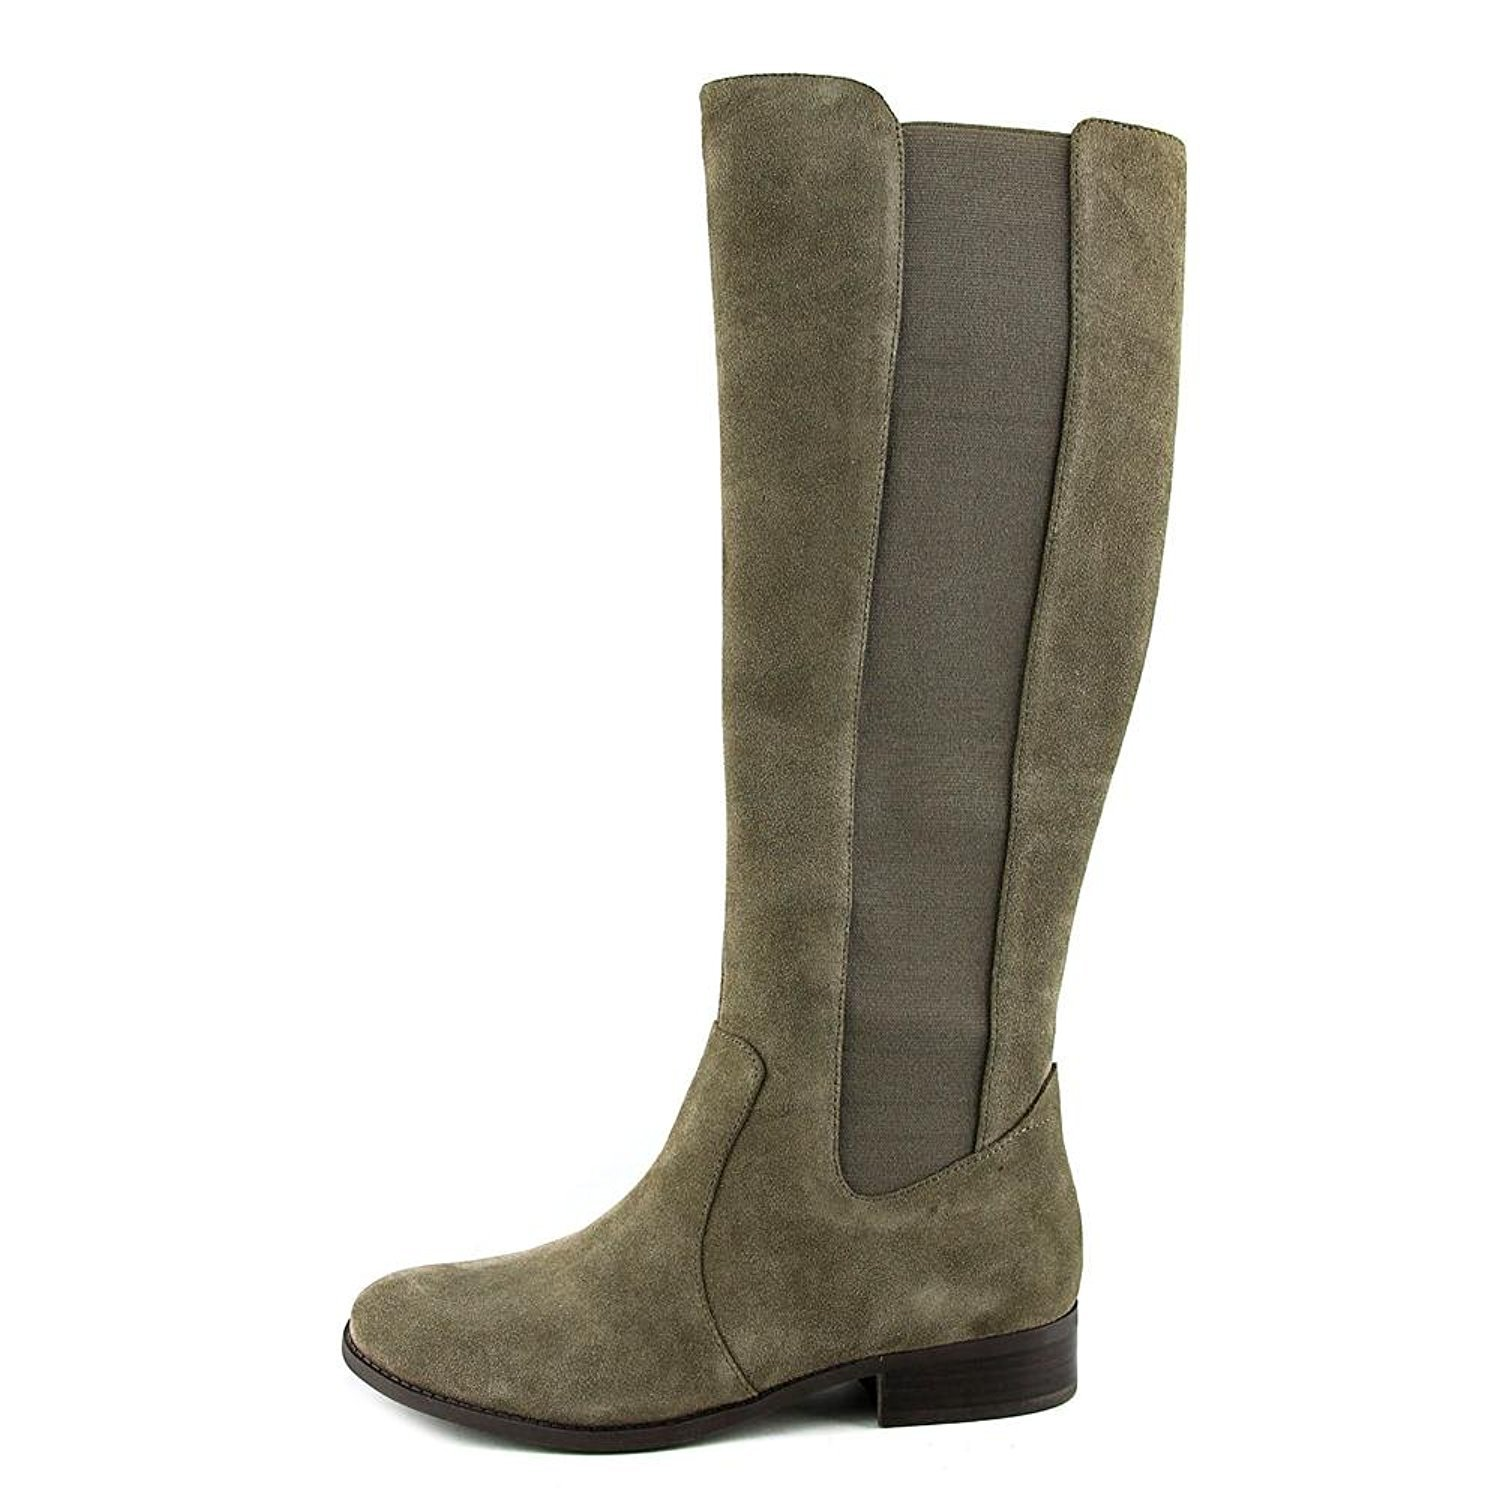 Jessica Simpson RICEL 2 Women Round B06XBZKRRS Toe Knee High Boot B06XBZKRRS Round 8.5 C/D US|Olive Taupe 02c6b1